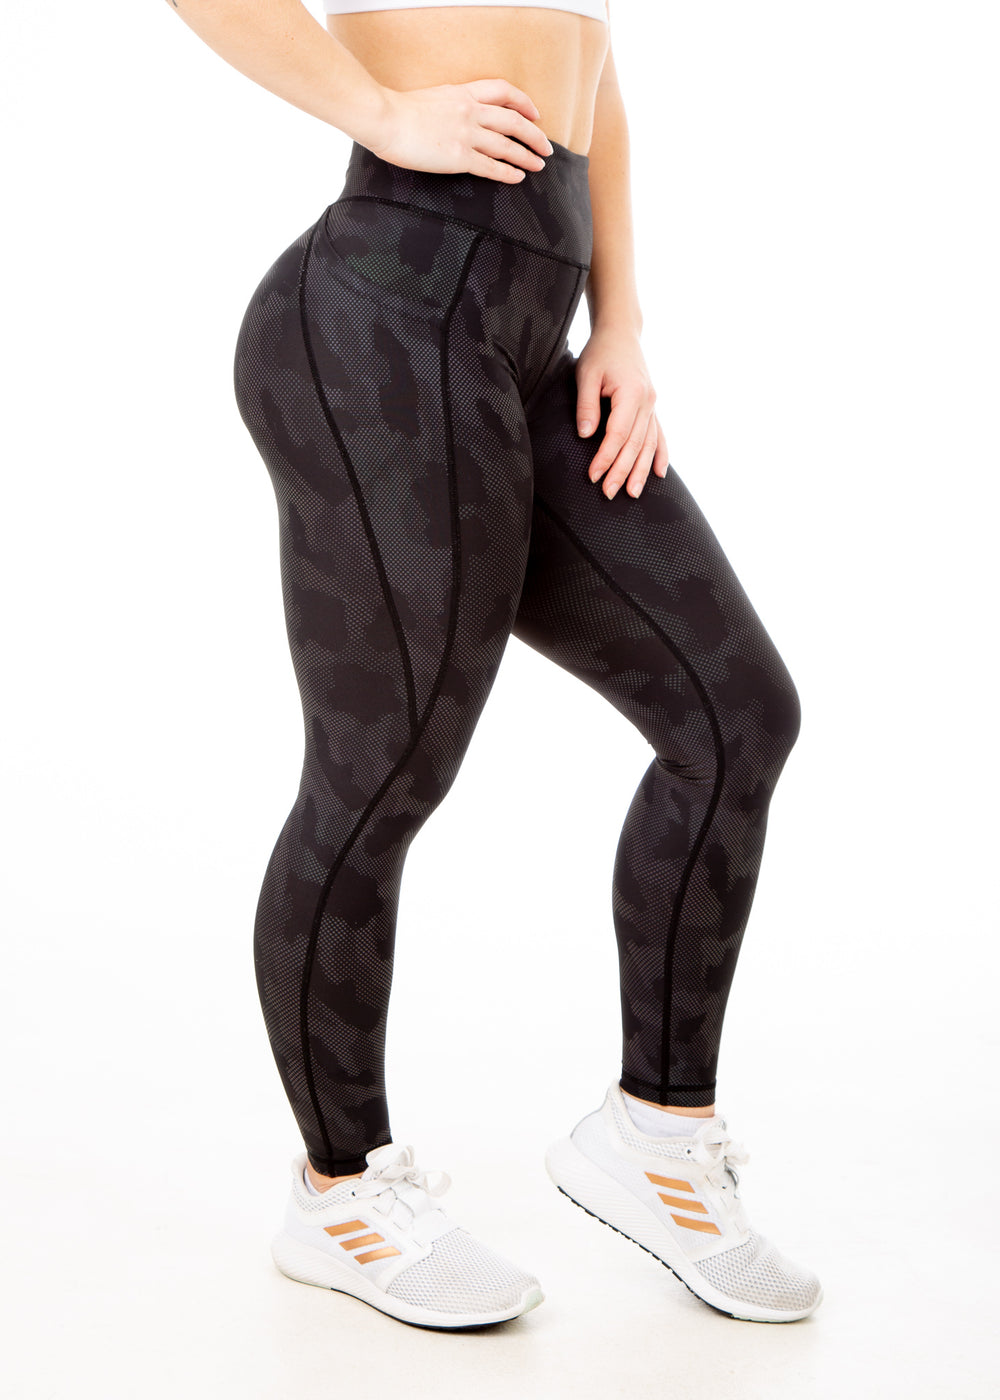 Holographic Camo – V4 Leggings